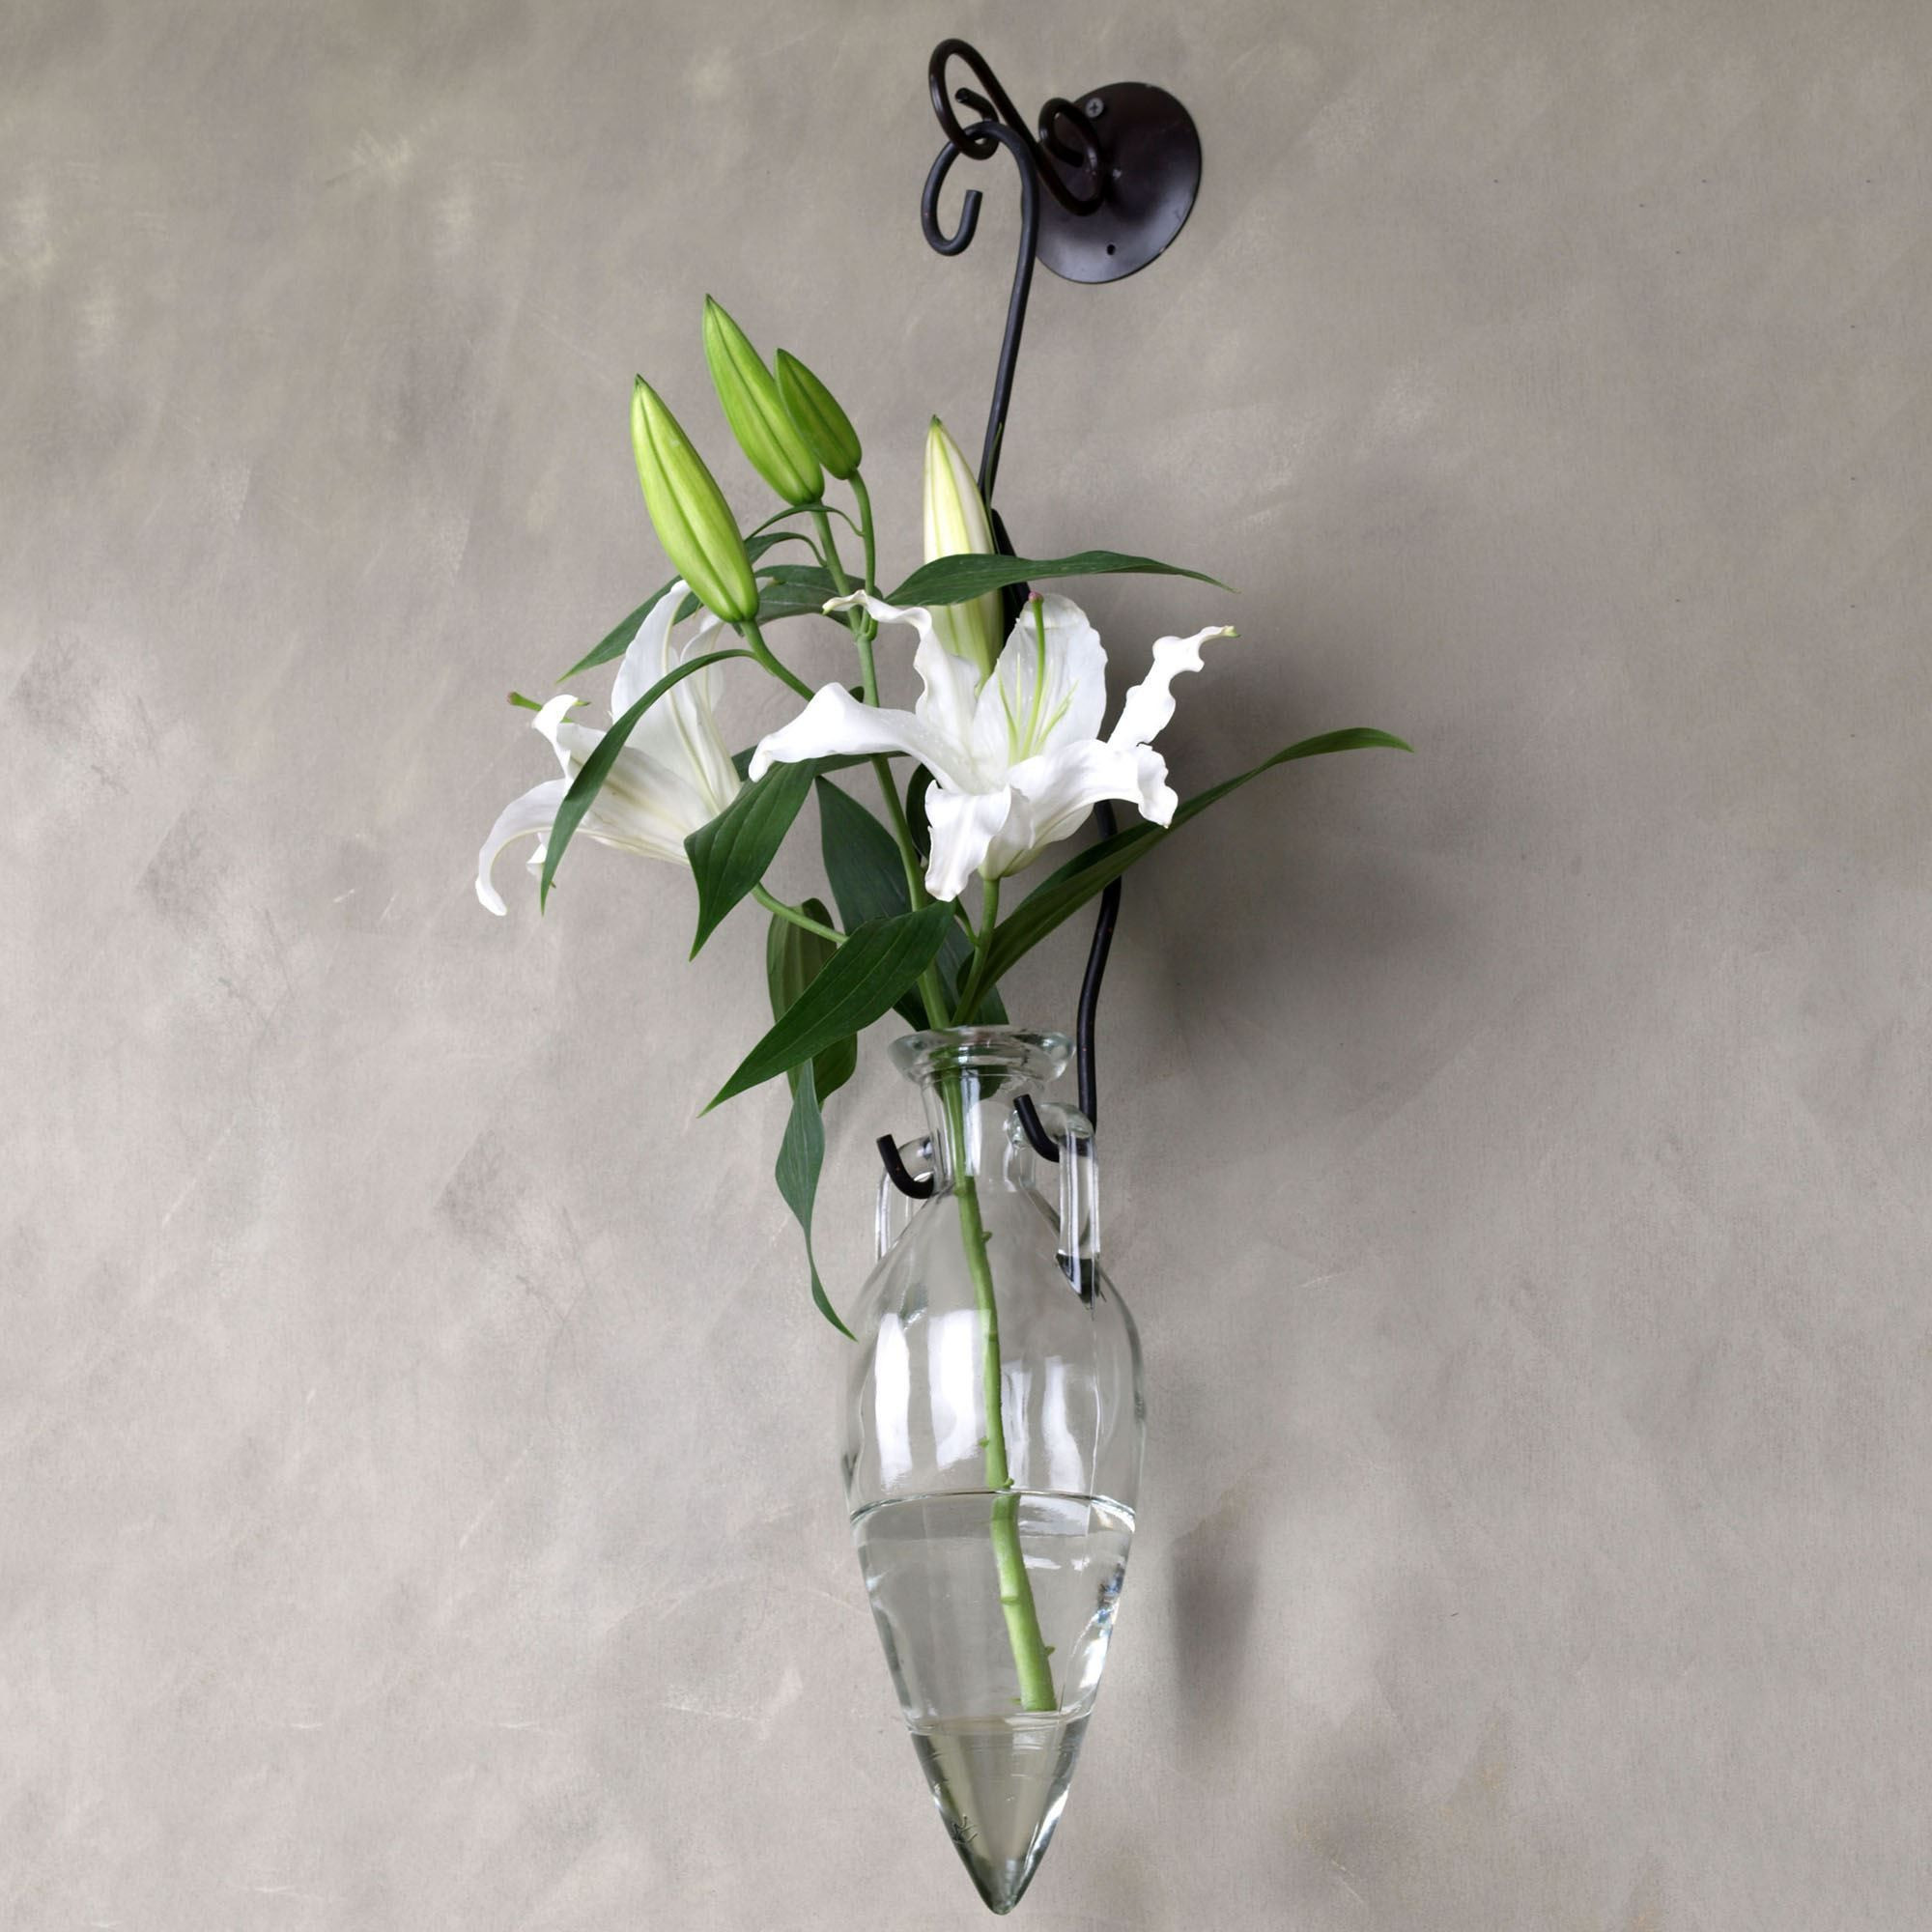 decorative flowers for floor vases of 30 copper flower vase the weekly world with regard to 33 inspirational silver vase decor